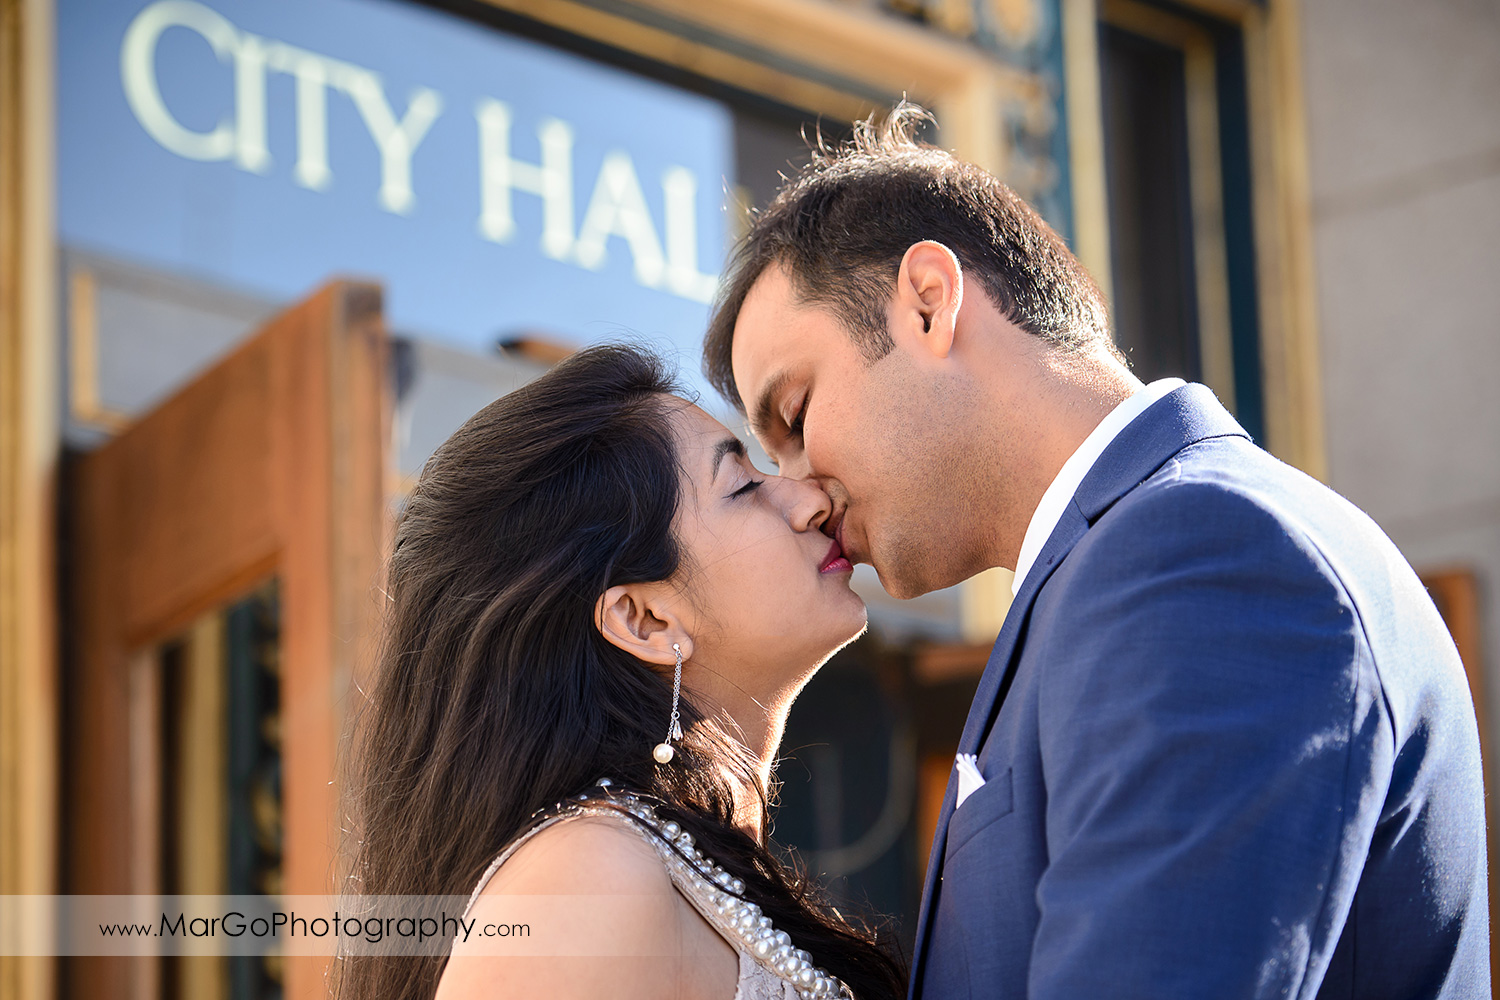 woman in beige dress and man in navy blue suit kissing in front of San Francisco City Hall entrance